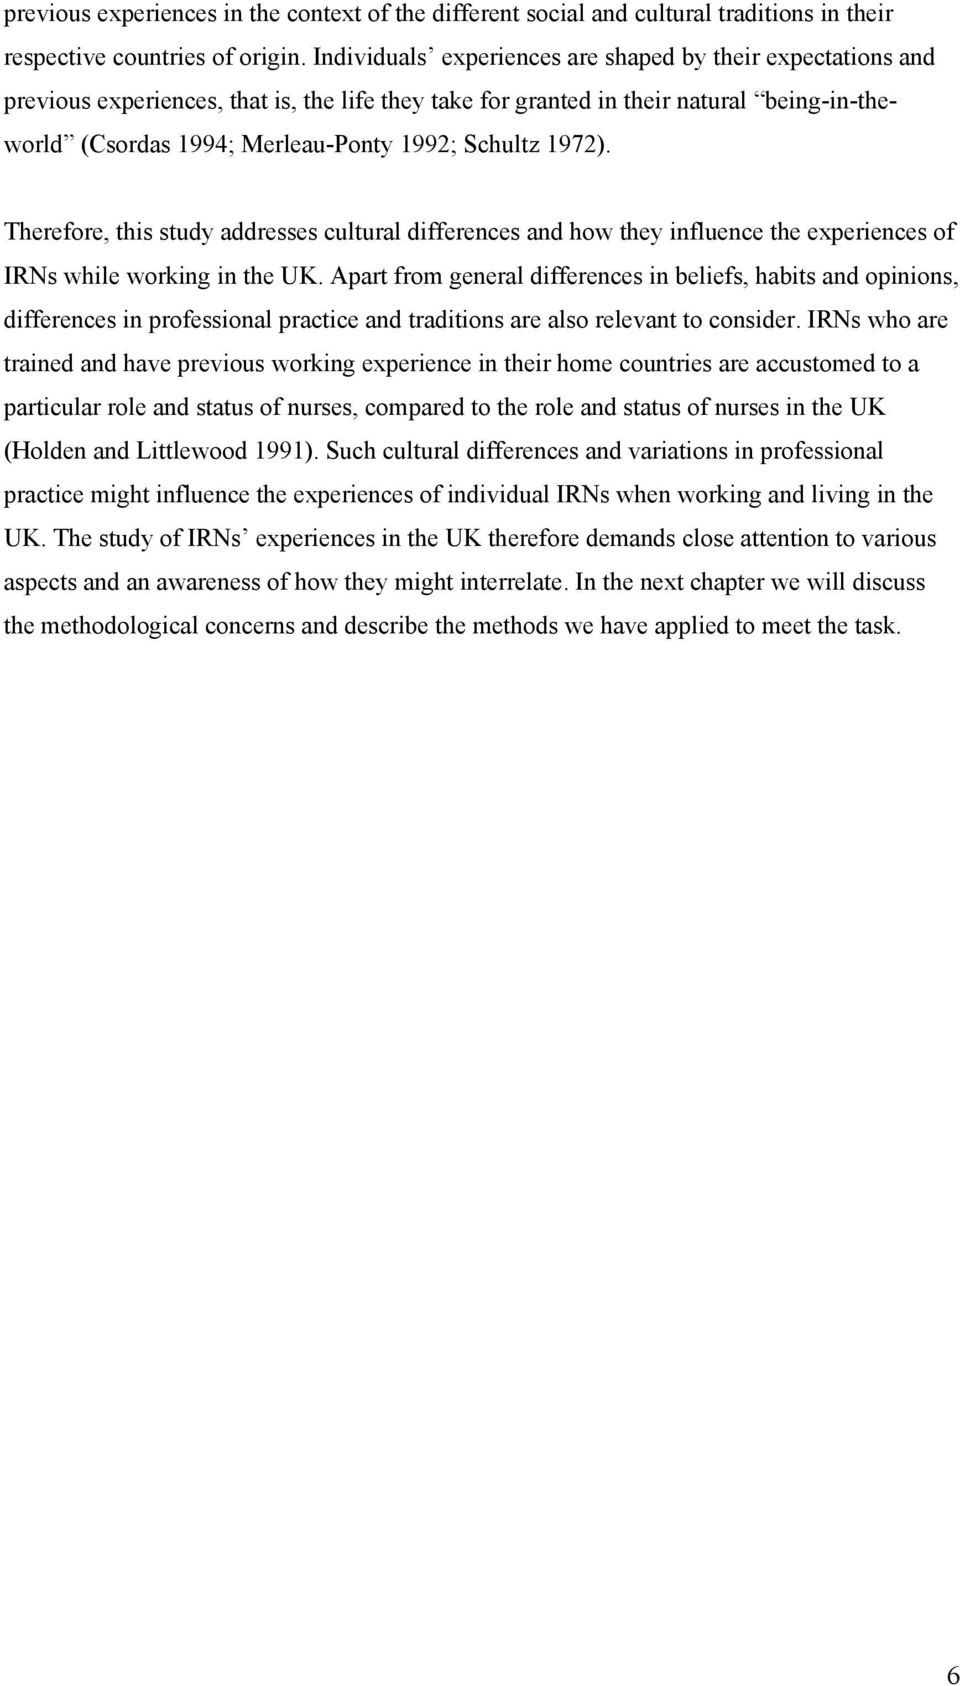 Schultz 1972). Therefore, this study addresses cultural differences and how they influence the experiences of IRNs while working in the UK.